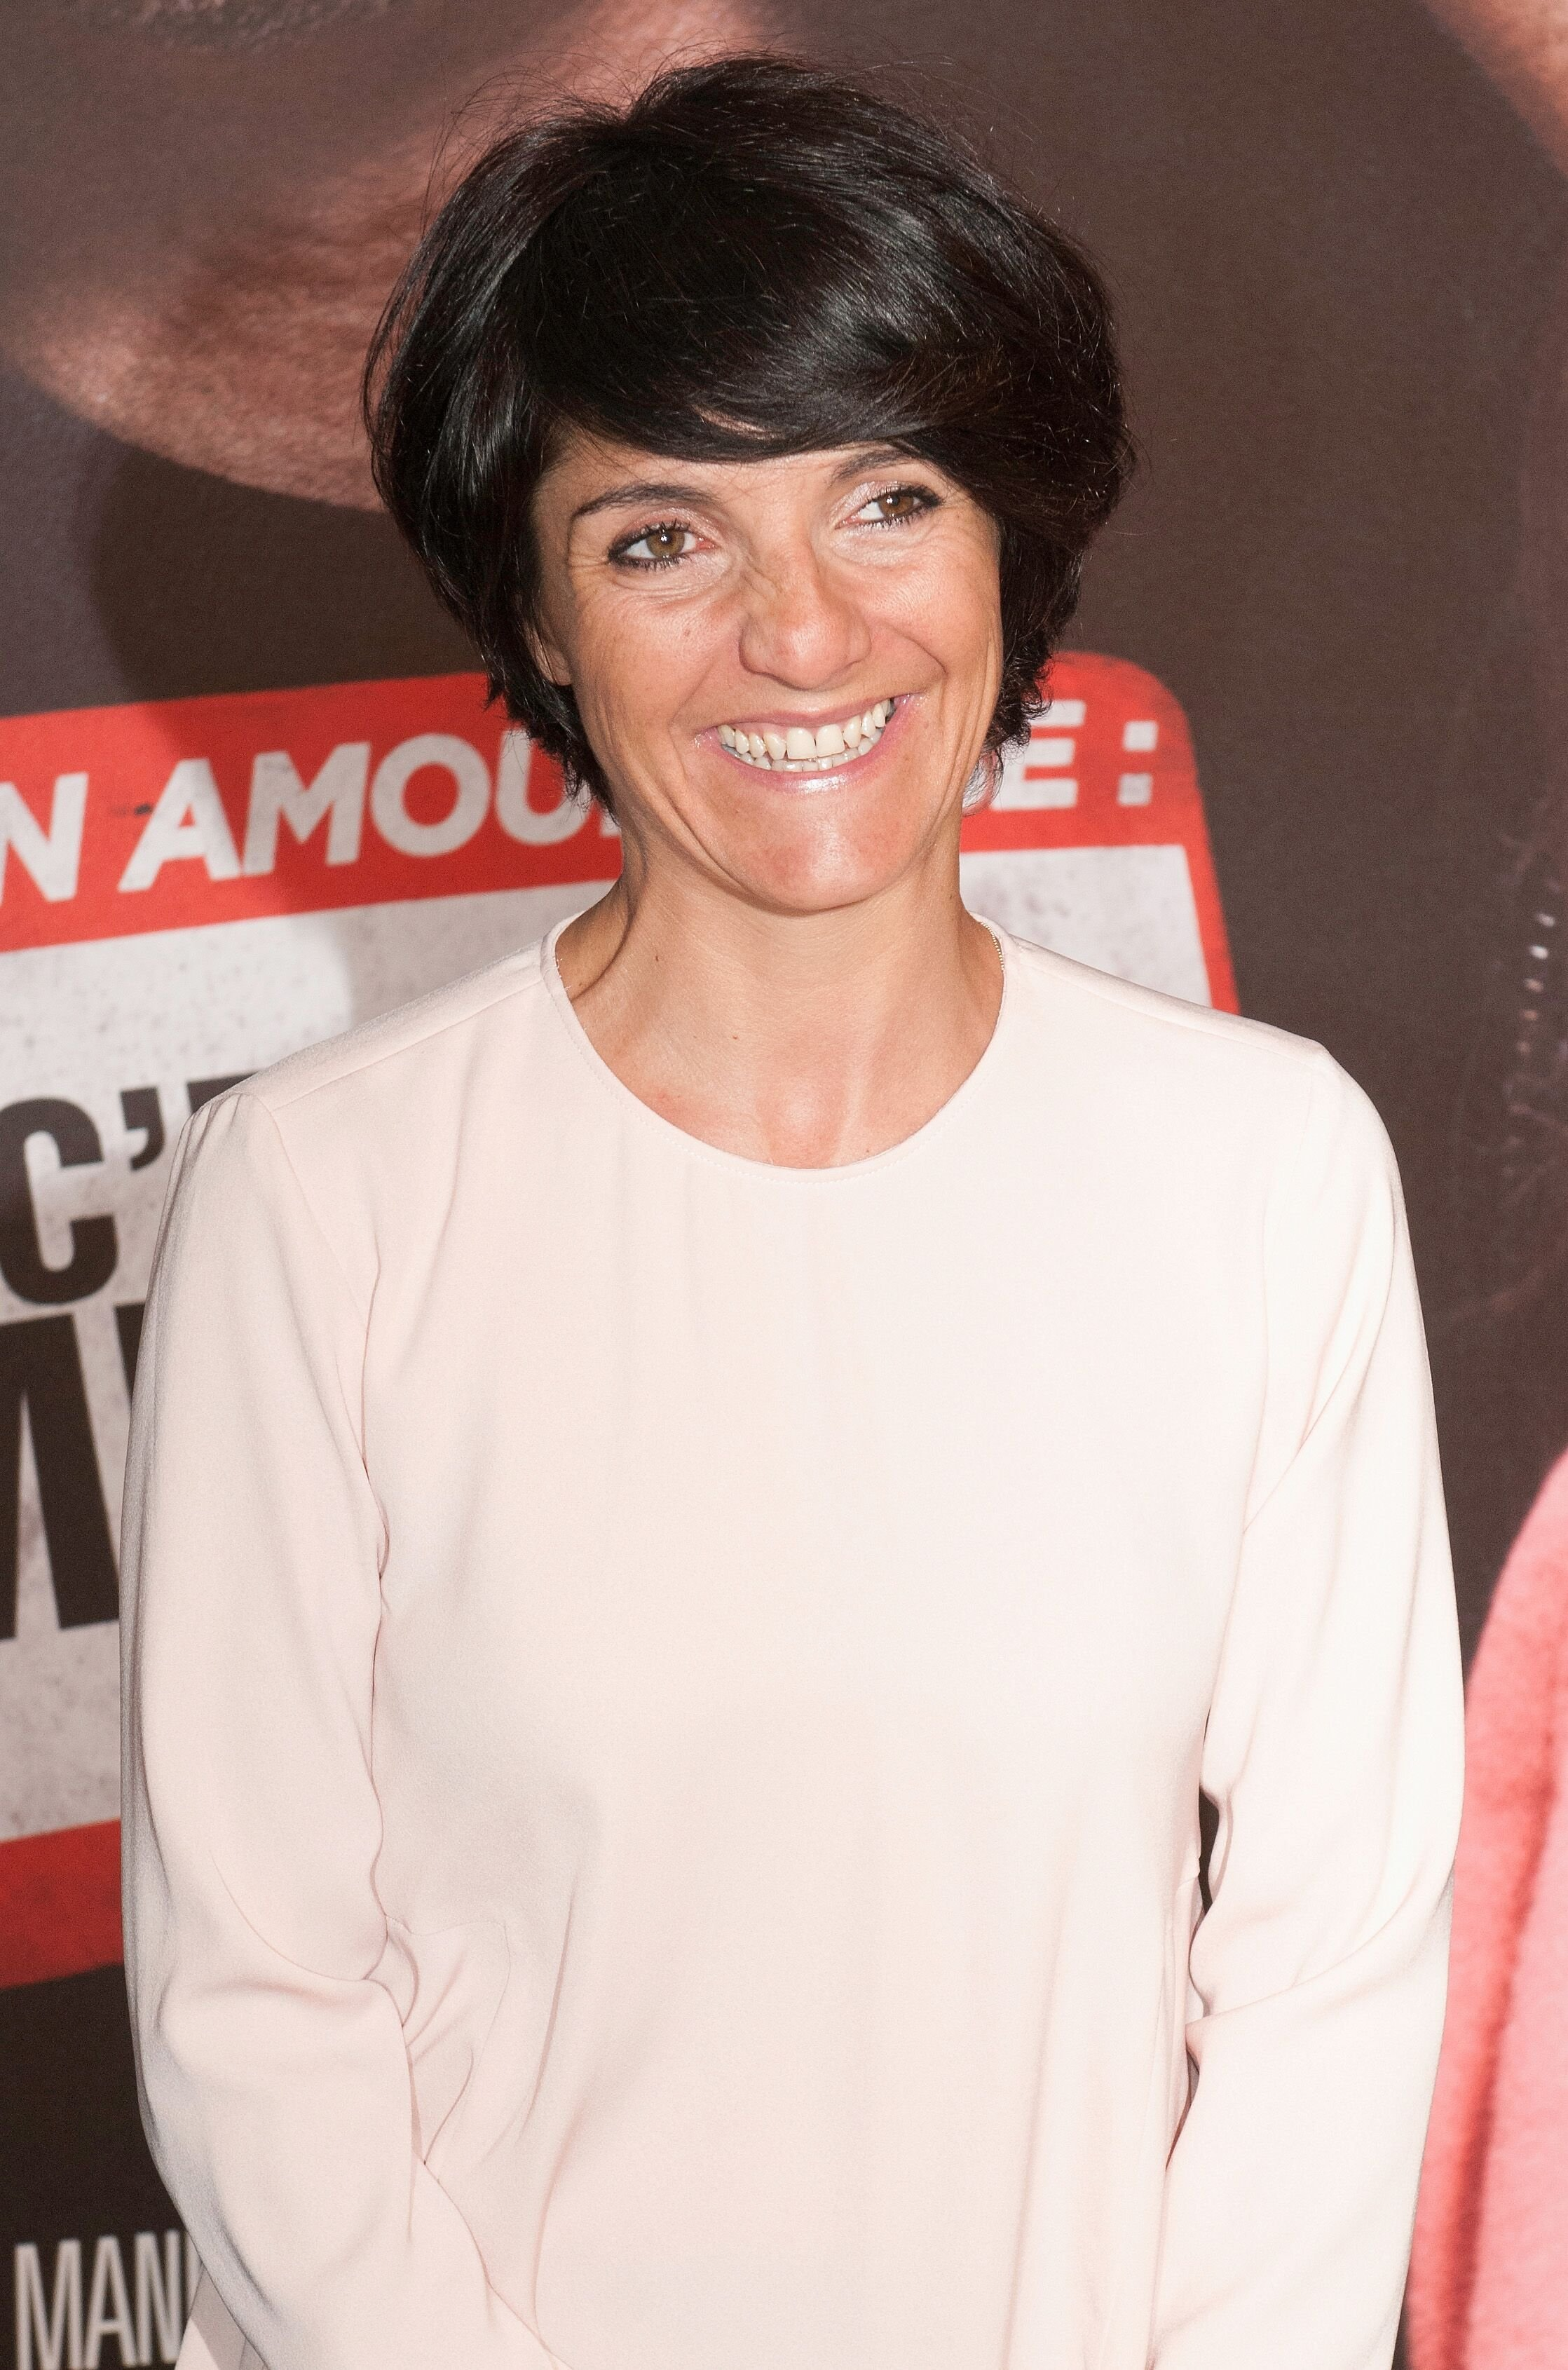 Florence Foresti au Cinéma UGC Normandie le 17 mars 2014 à Paris, France. | Photo : Getty Images